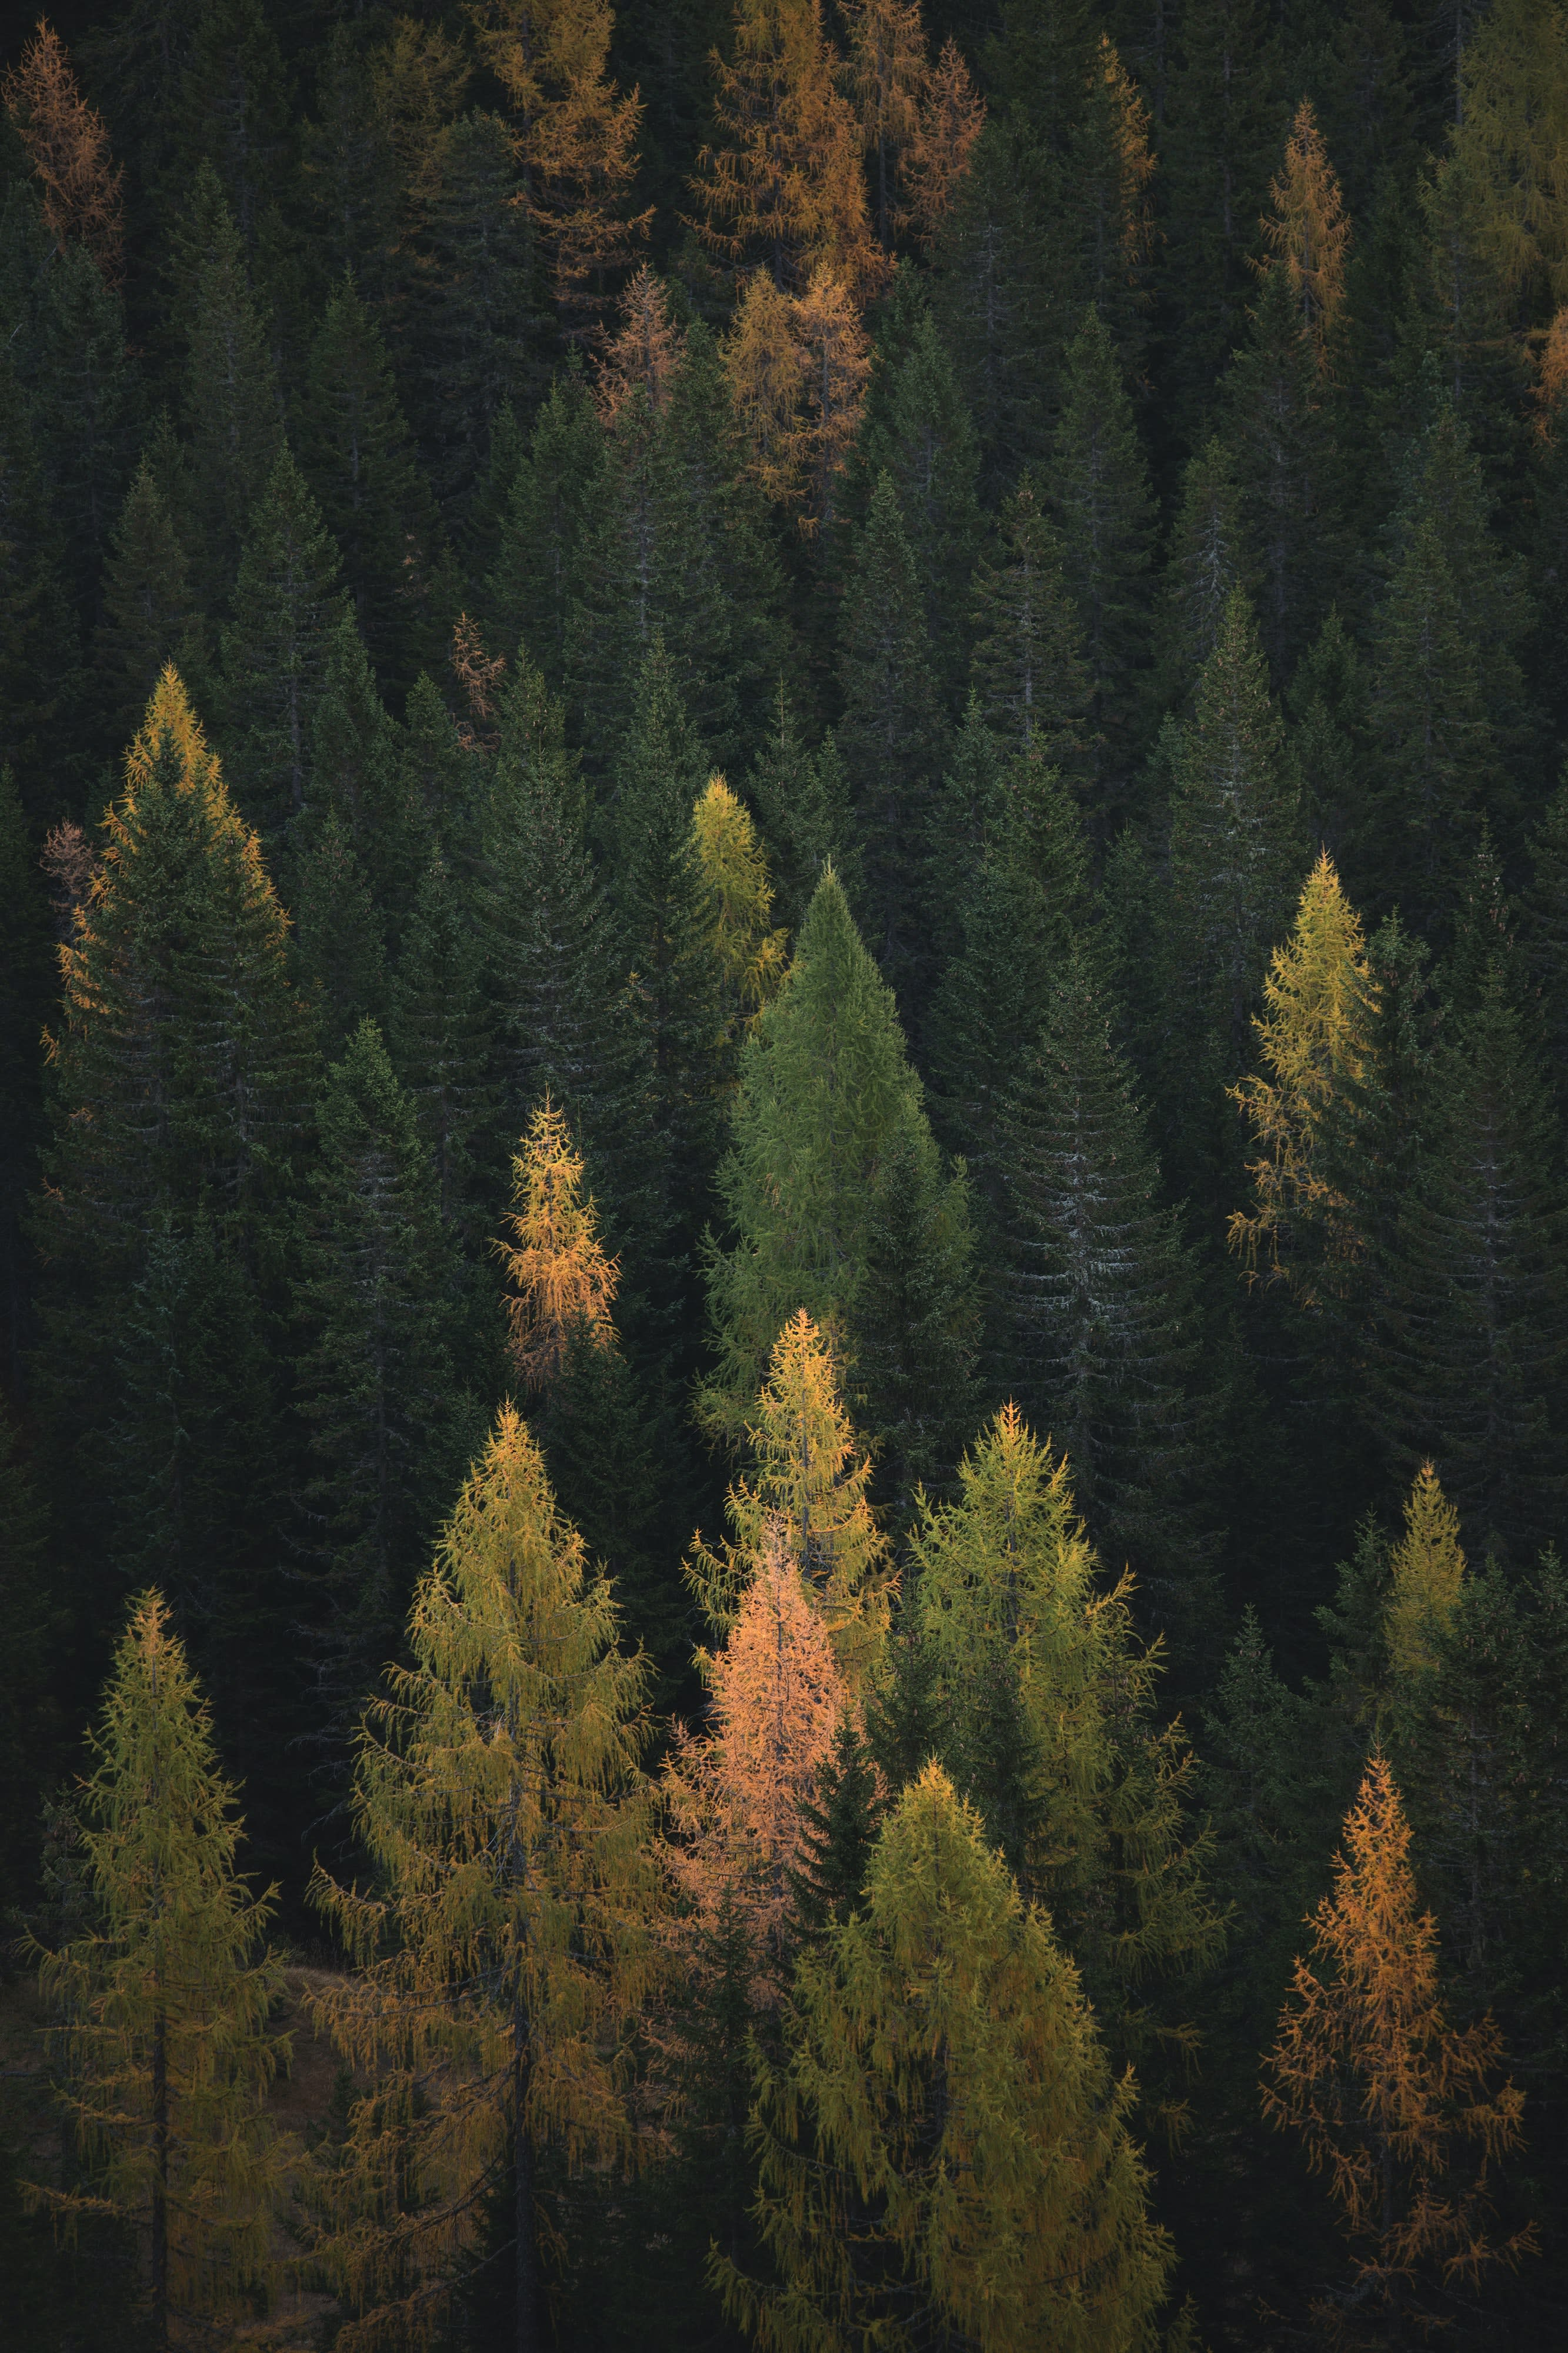 Top down view of a pine forest with a scattering of yellow trees.